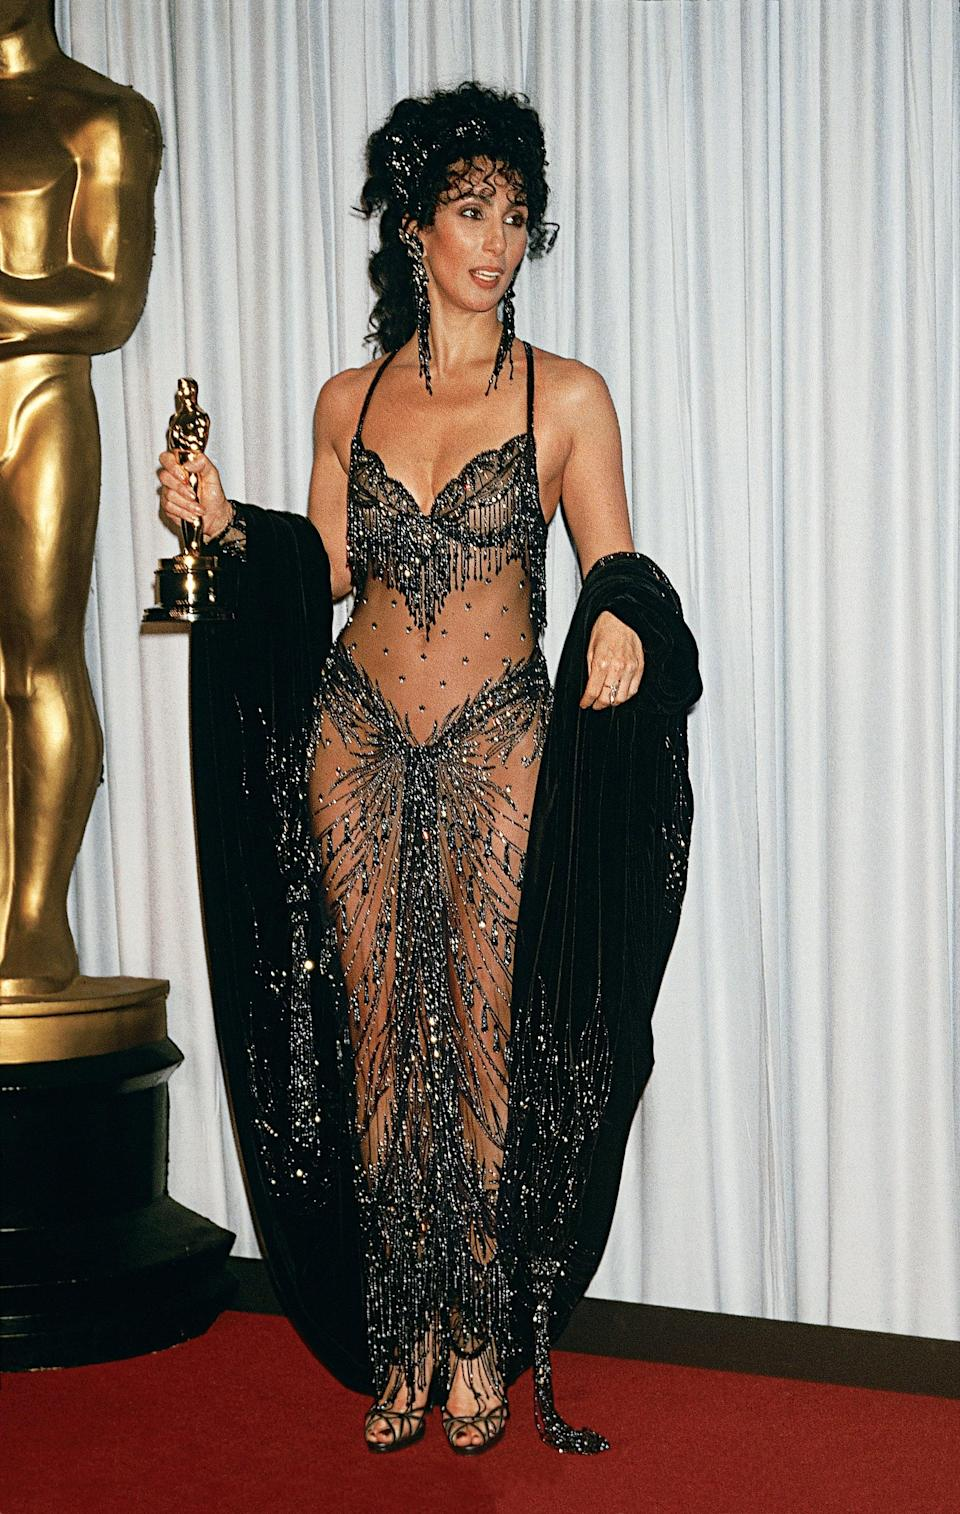 <p>Cher looked as stunning as ever while holding her award for best actress for the movie <strong>Moonstruck</strong>.</p>